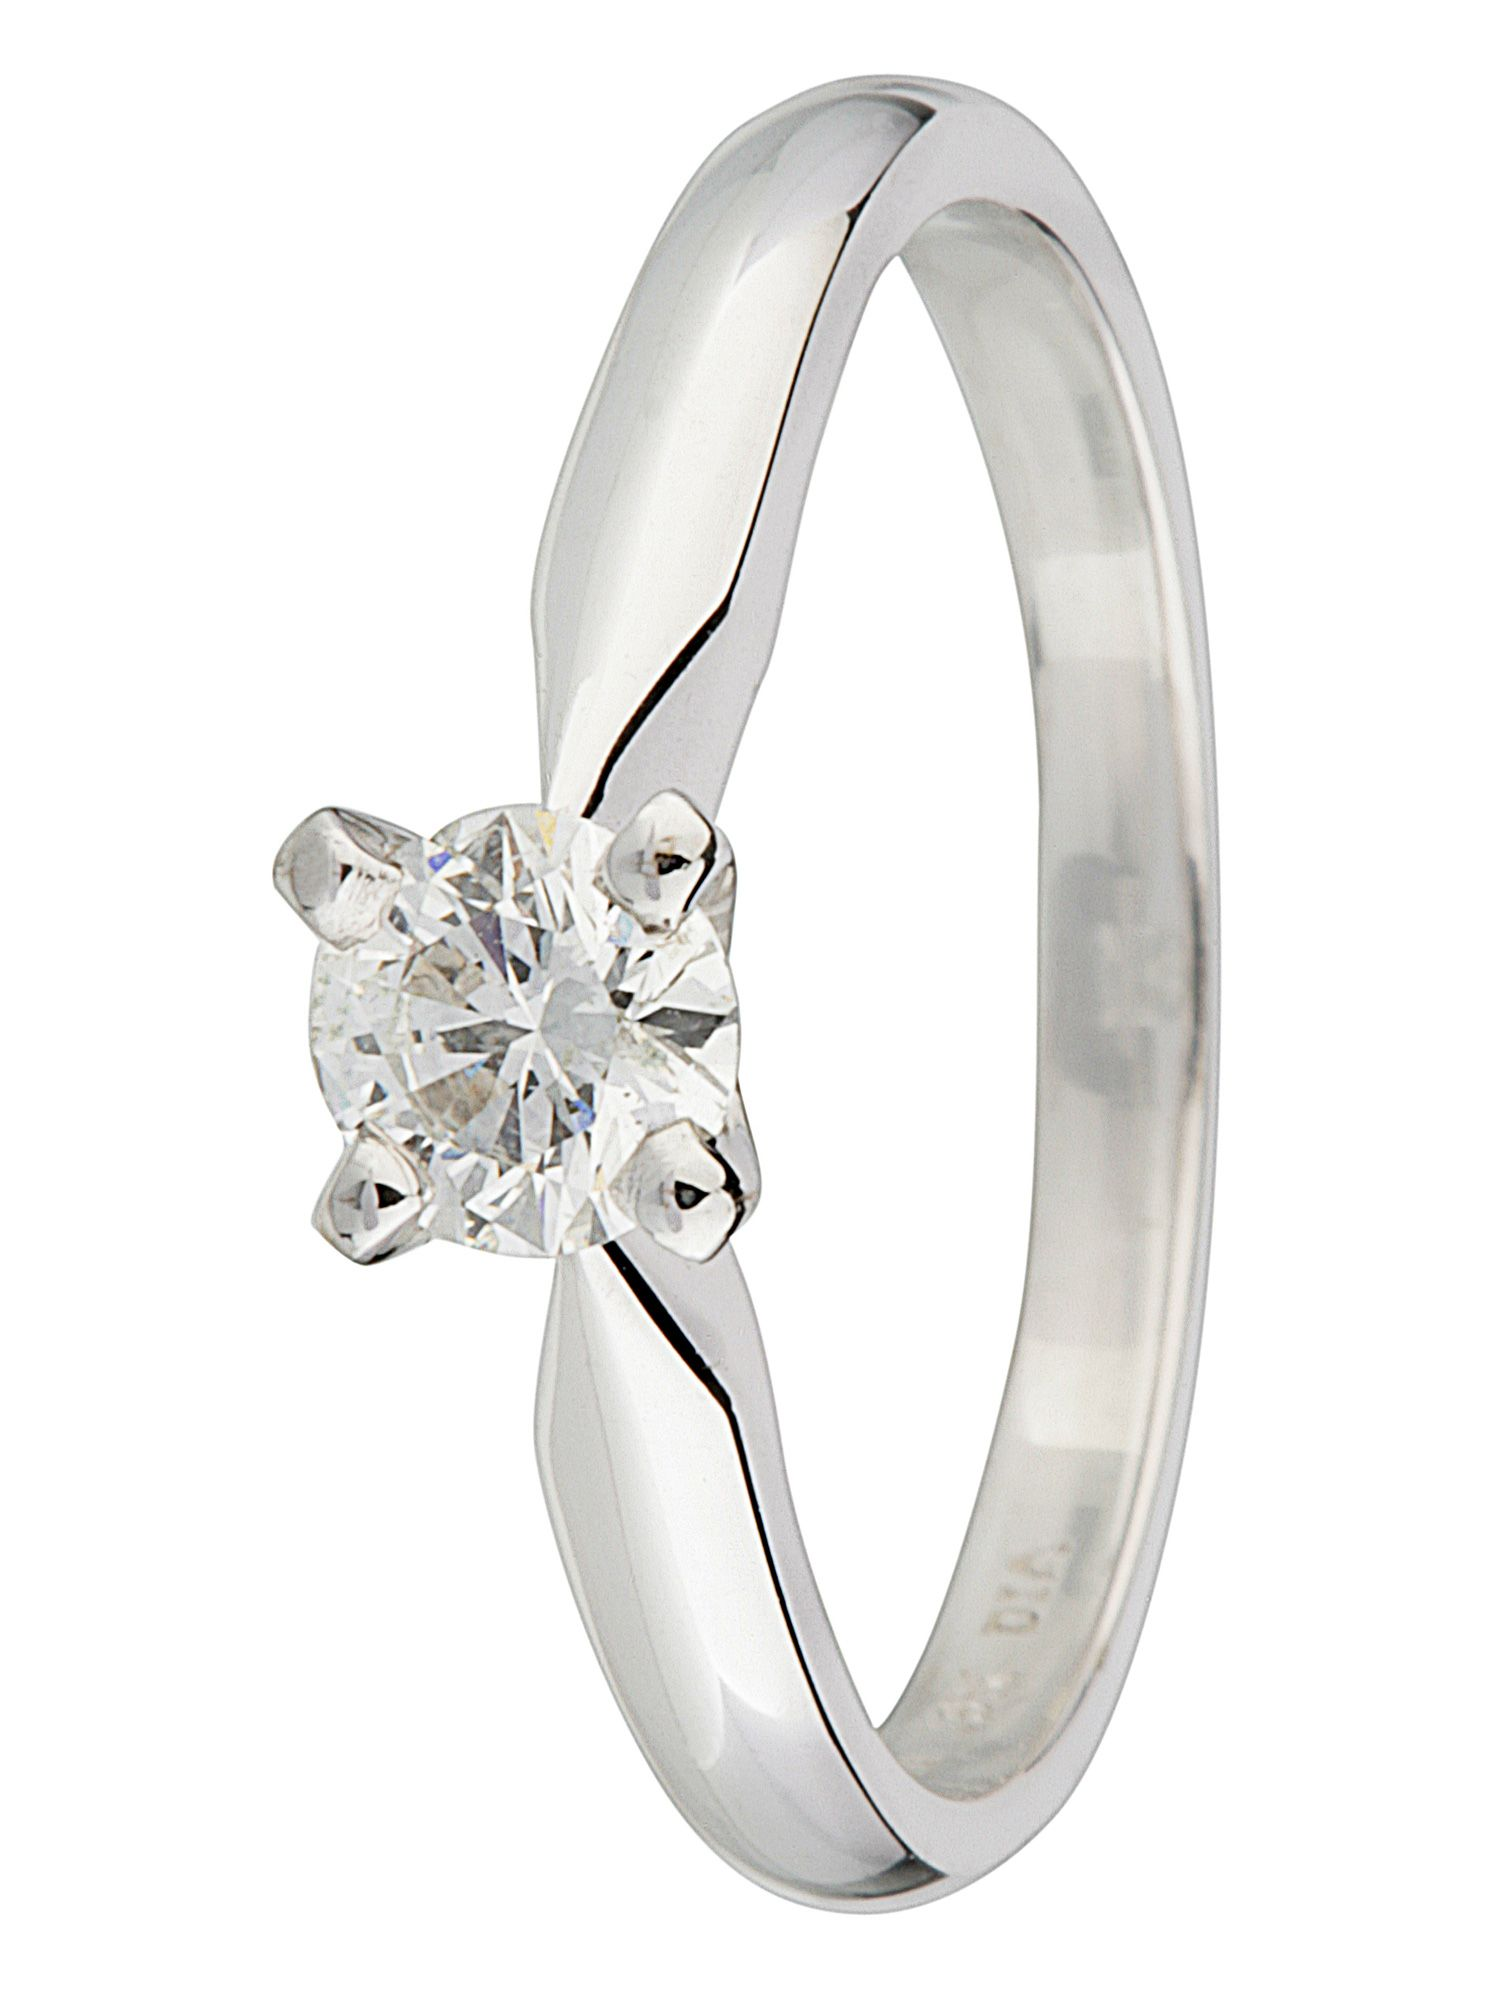 18ct gold solitaire 0.40ct diamond ring